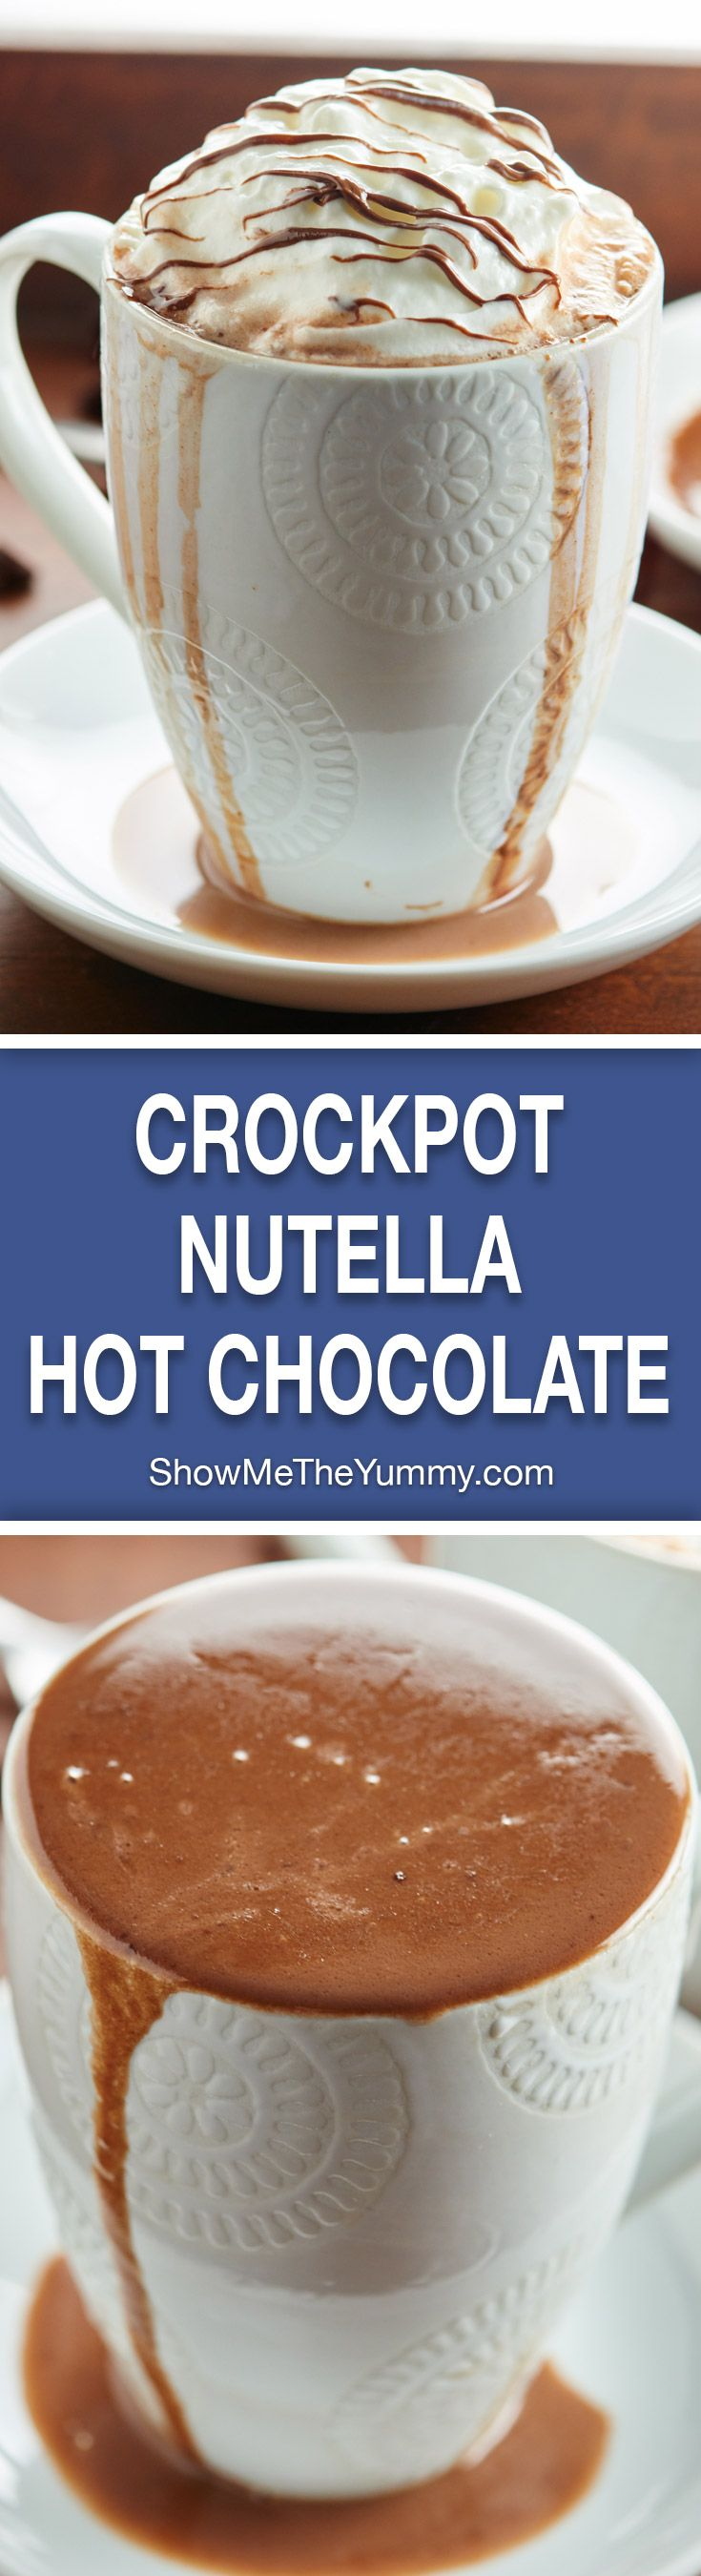 Making hot chocolate for a crowd - Crockpot Nutella Hot Chocolate